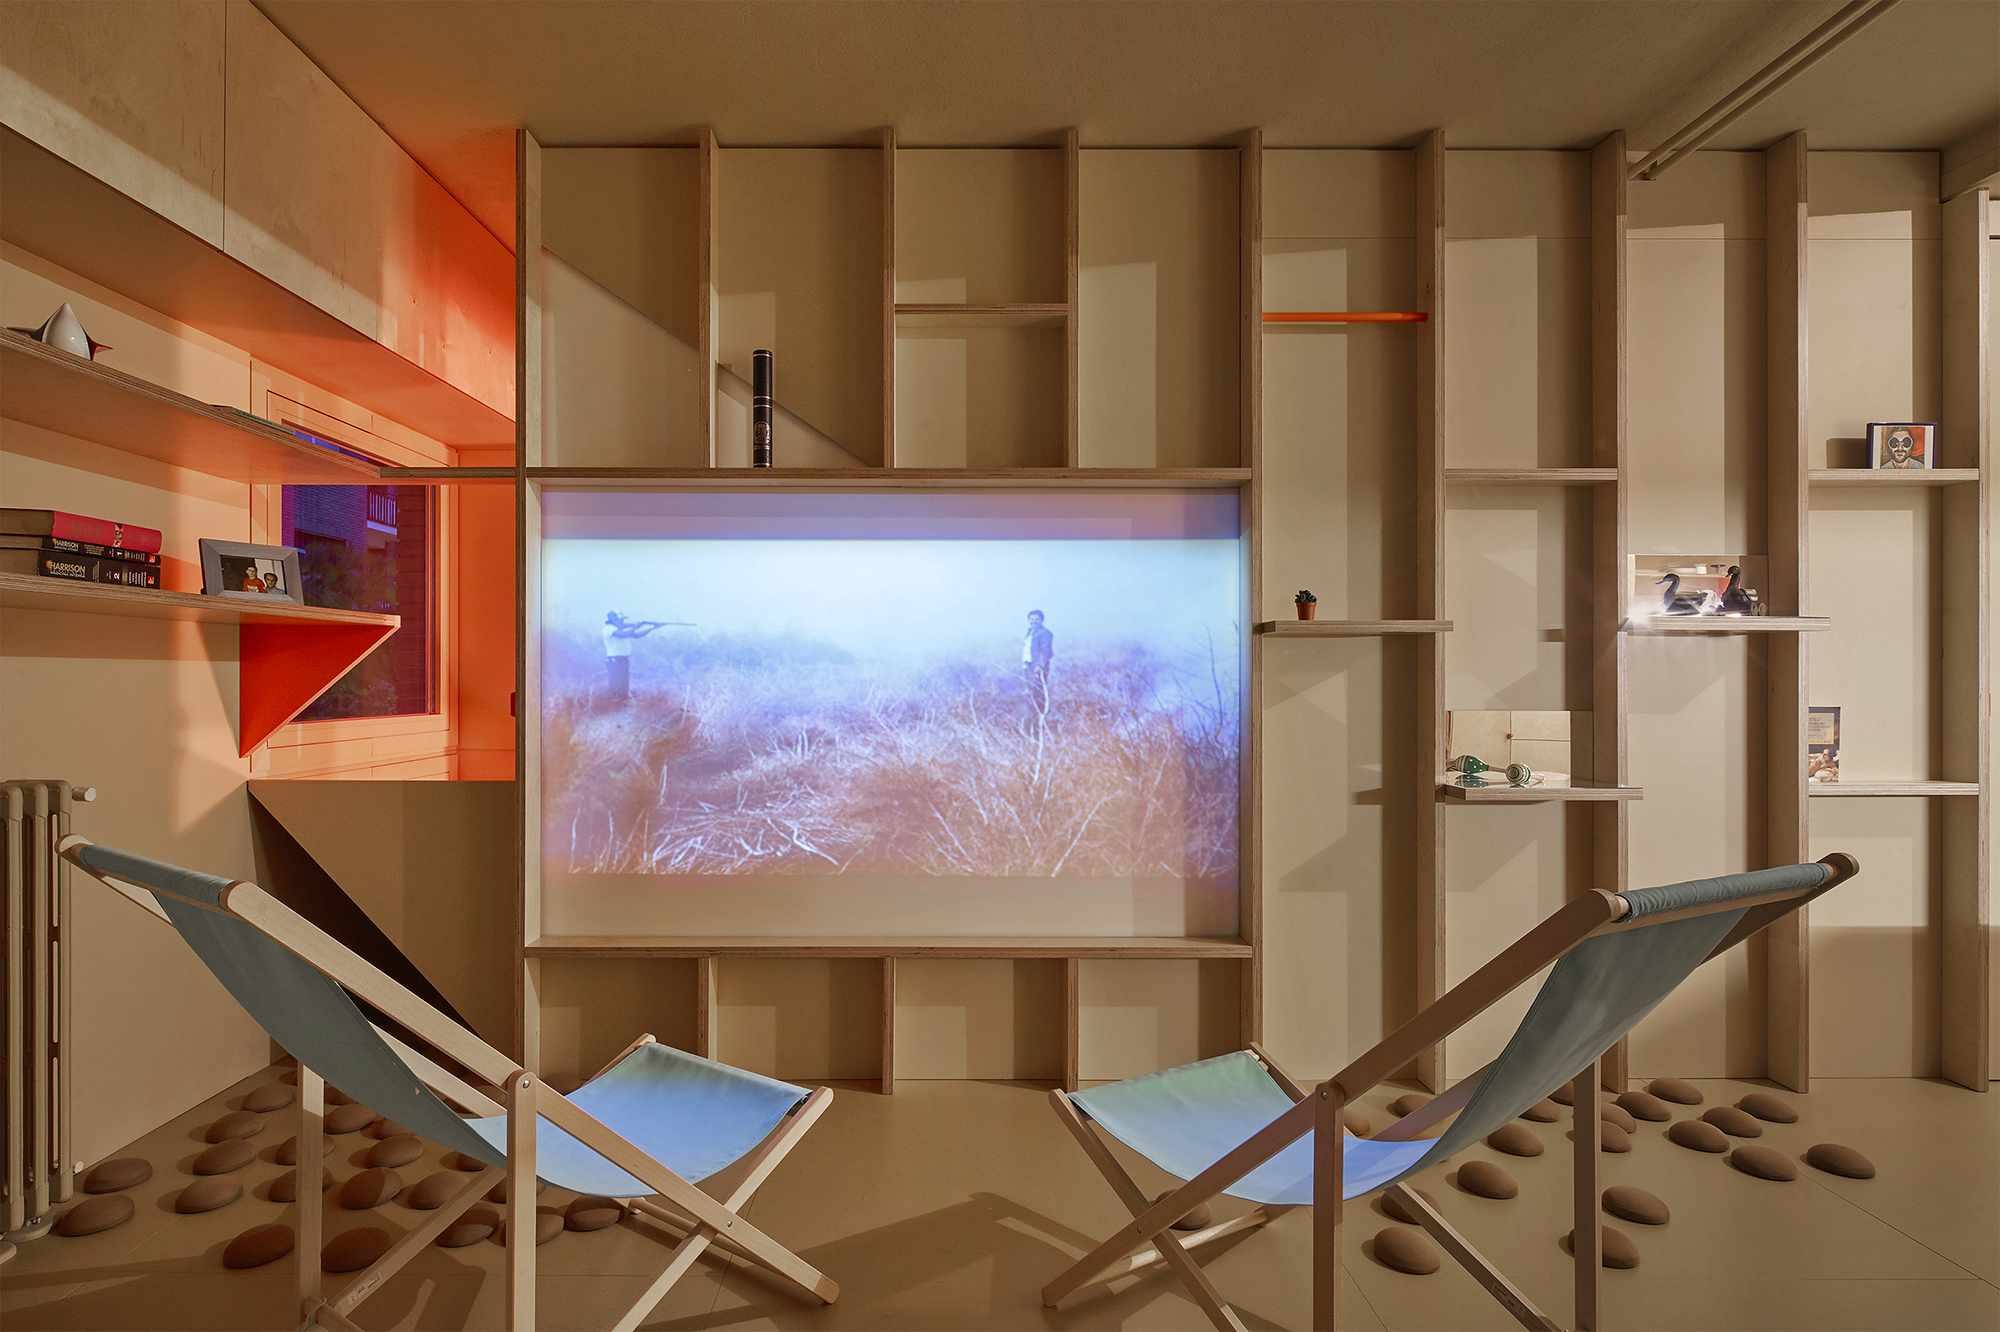 small apartment renovation madrid Husos Architects sliding door as projection screen